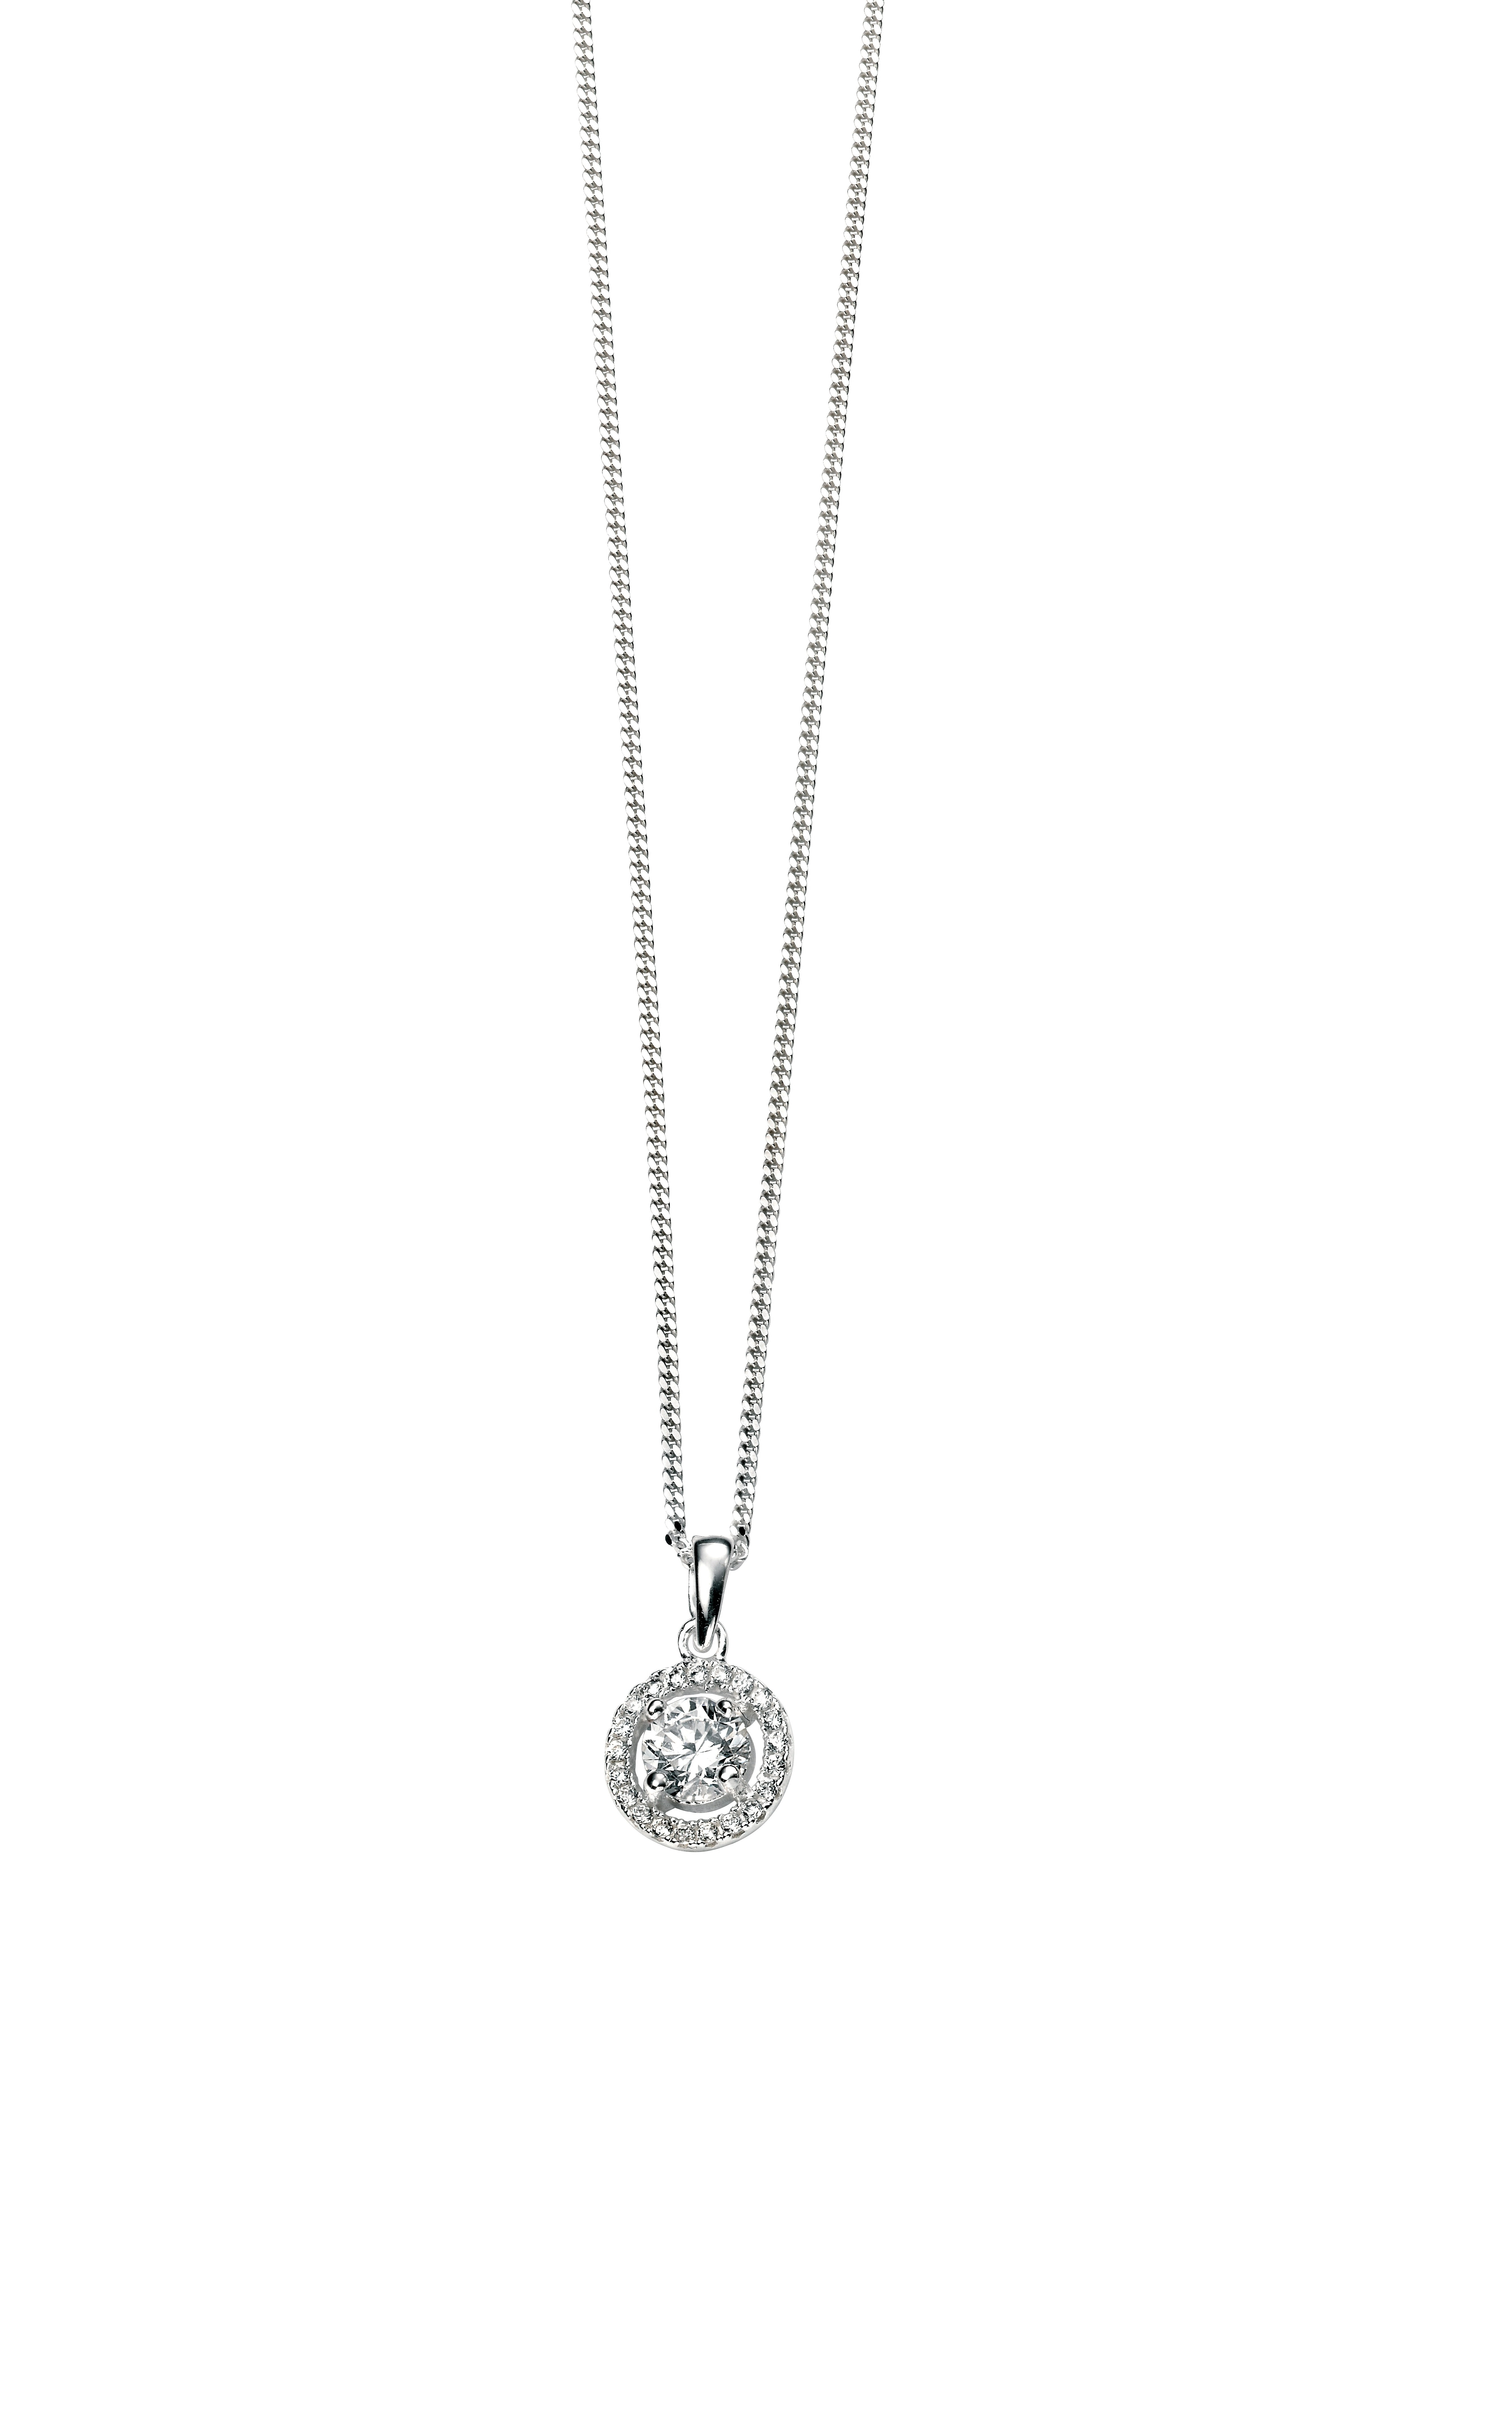 Clear Cz Round Pave Pendant With Curb With Extender 41+5cm Silver Intended For Most Popular Pavé Locket Element Necklaces (View 5 of 25)